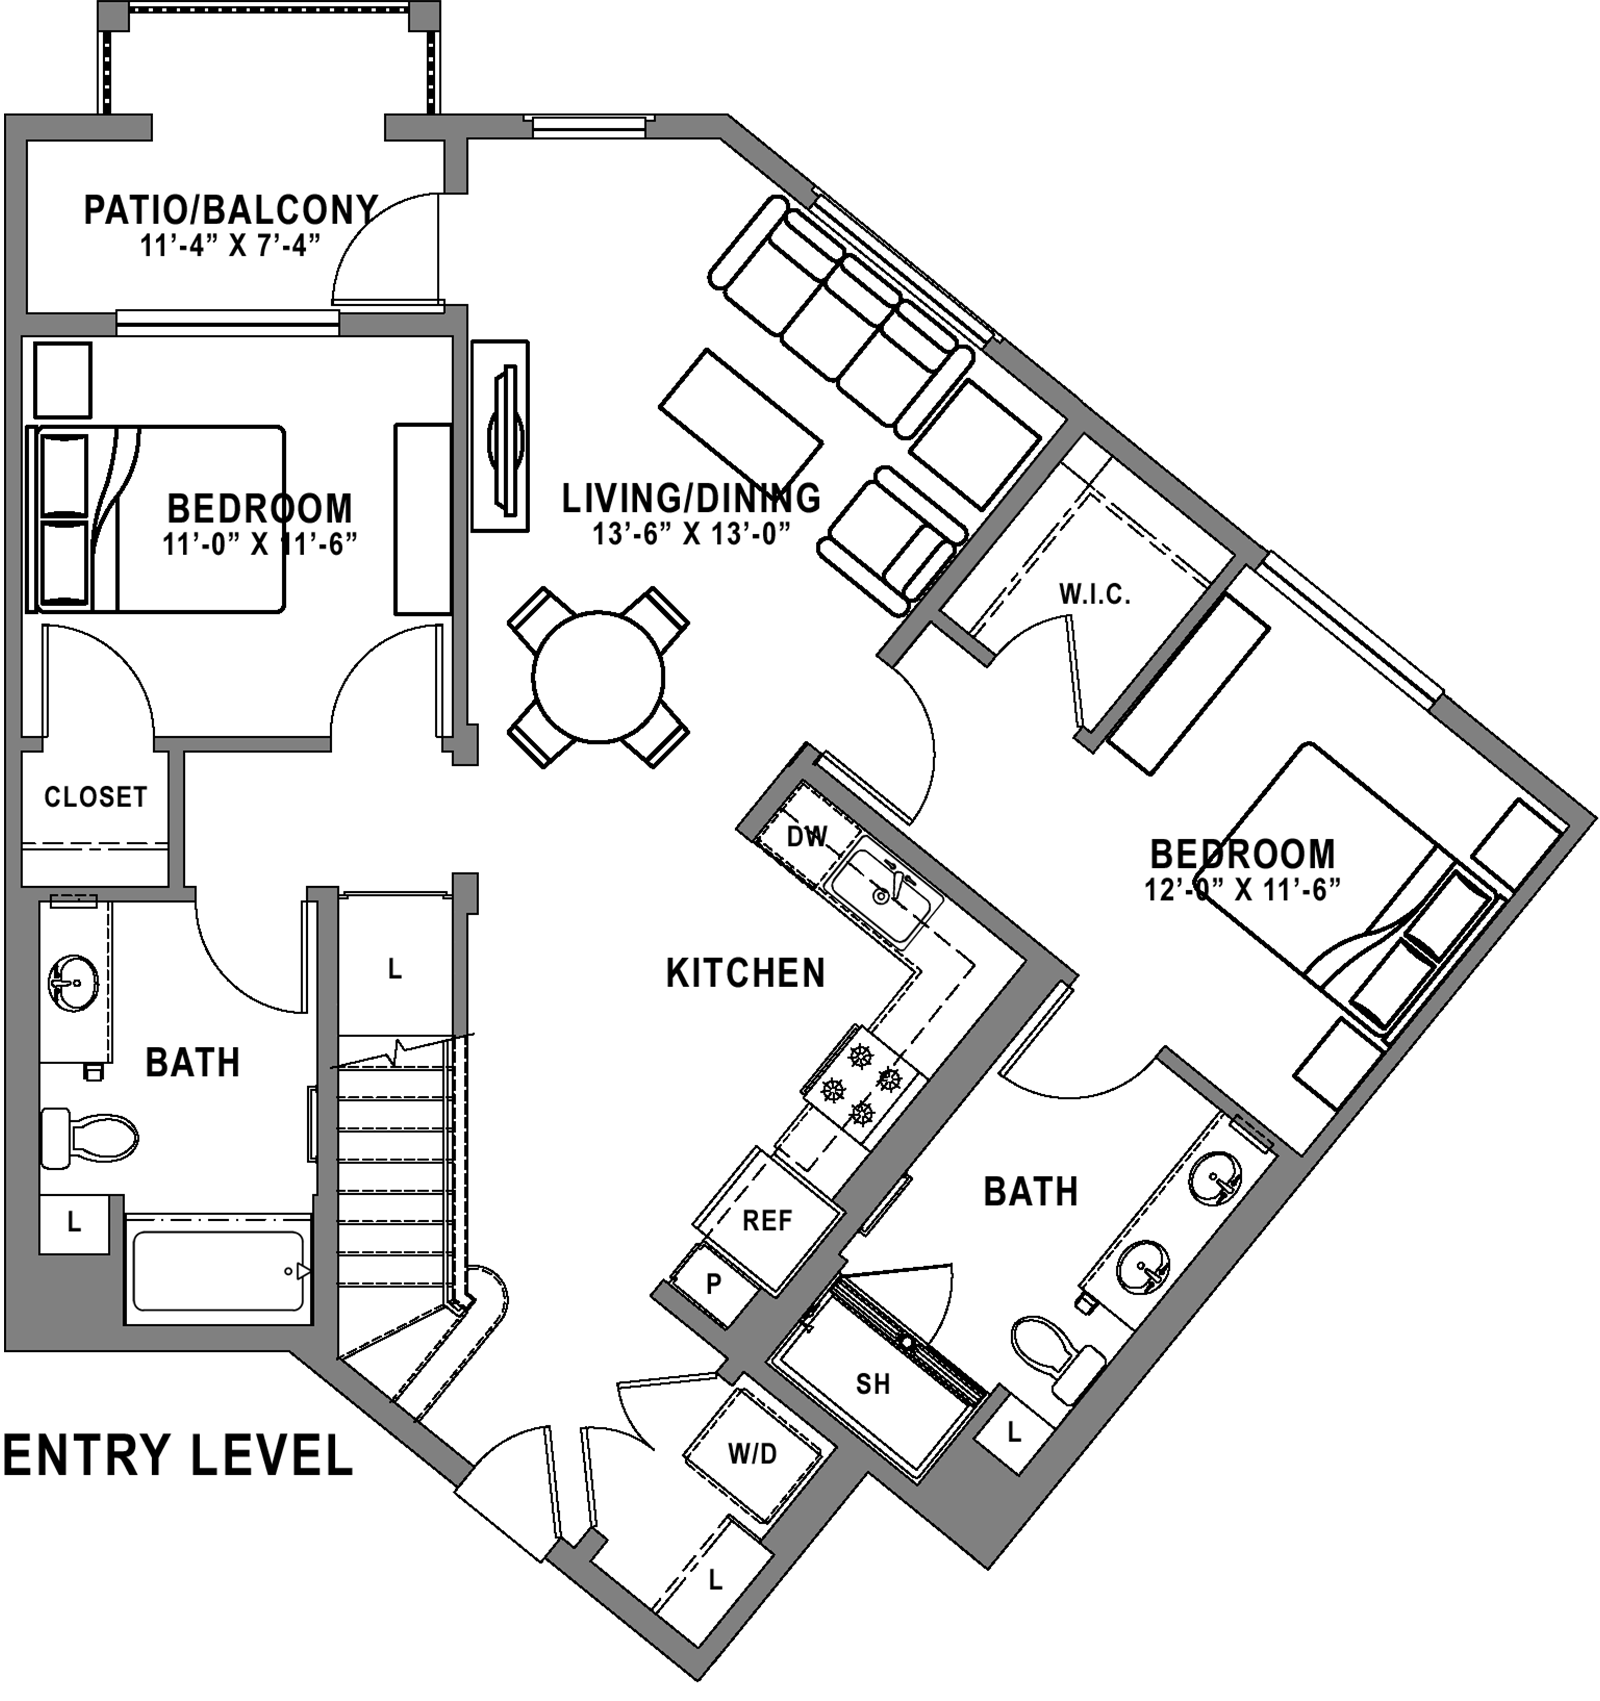 Plan B3 Loft - 2 Bedroom+ Loft, 2 Bath Floor Plan